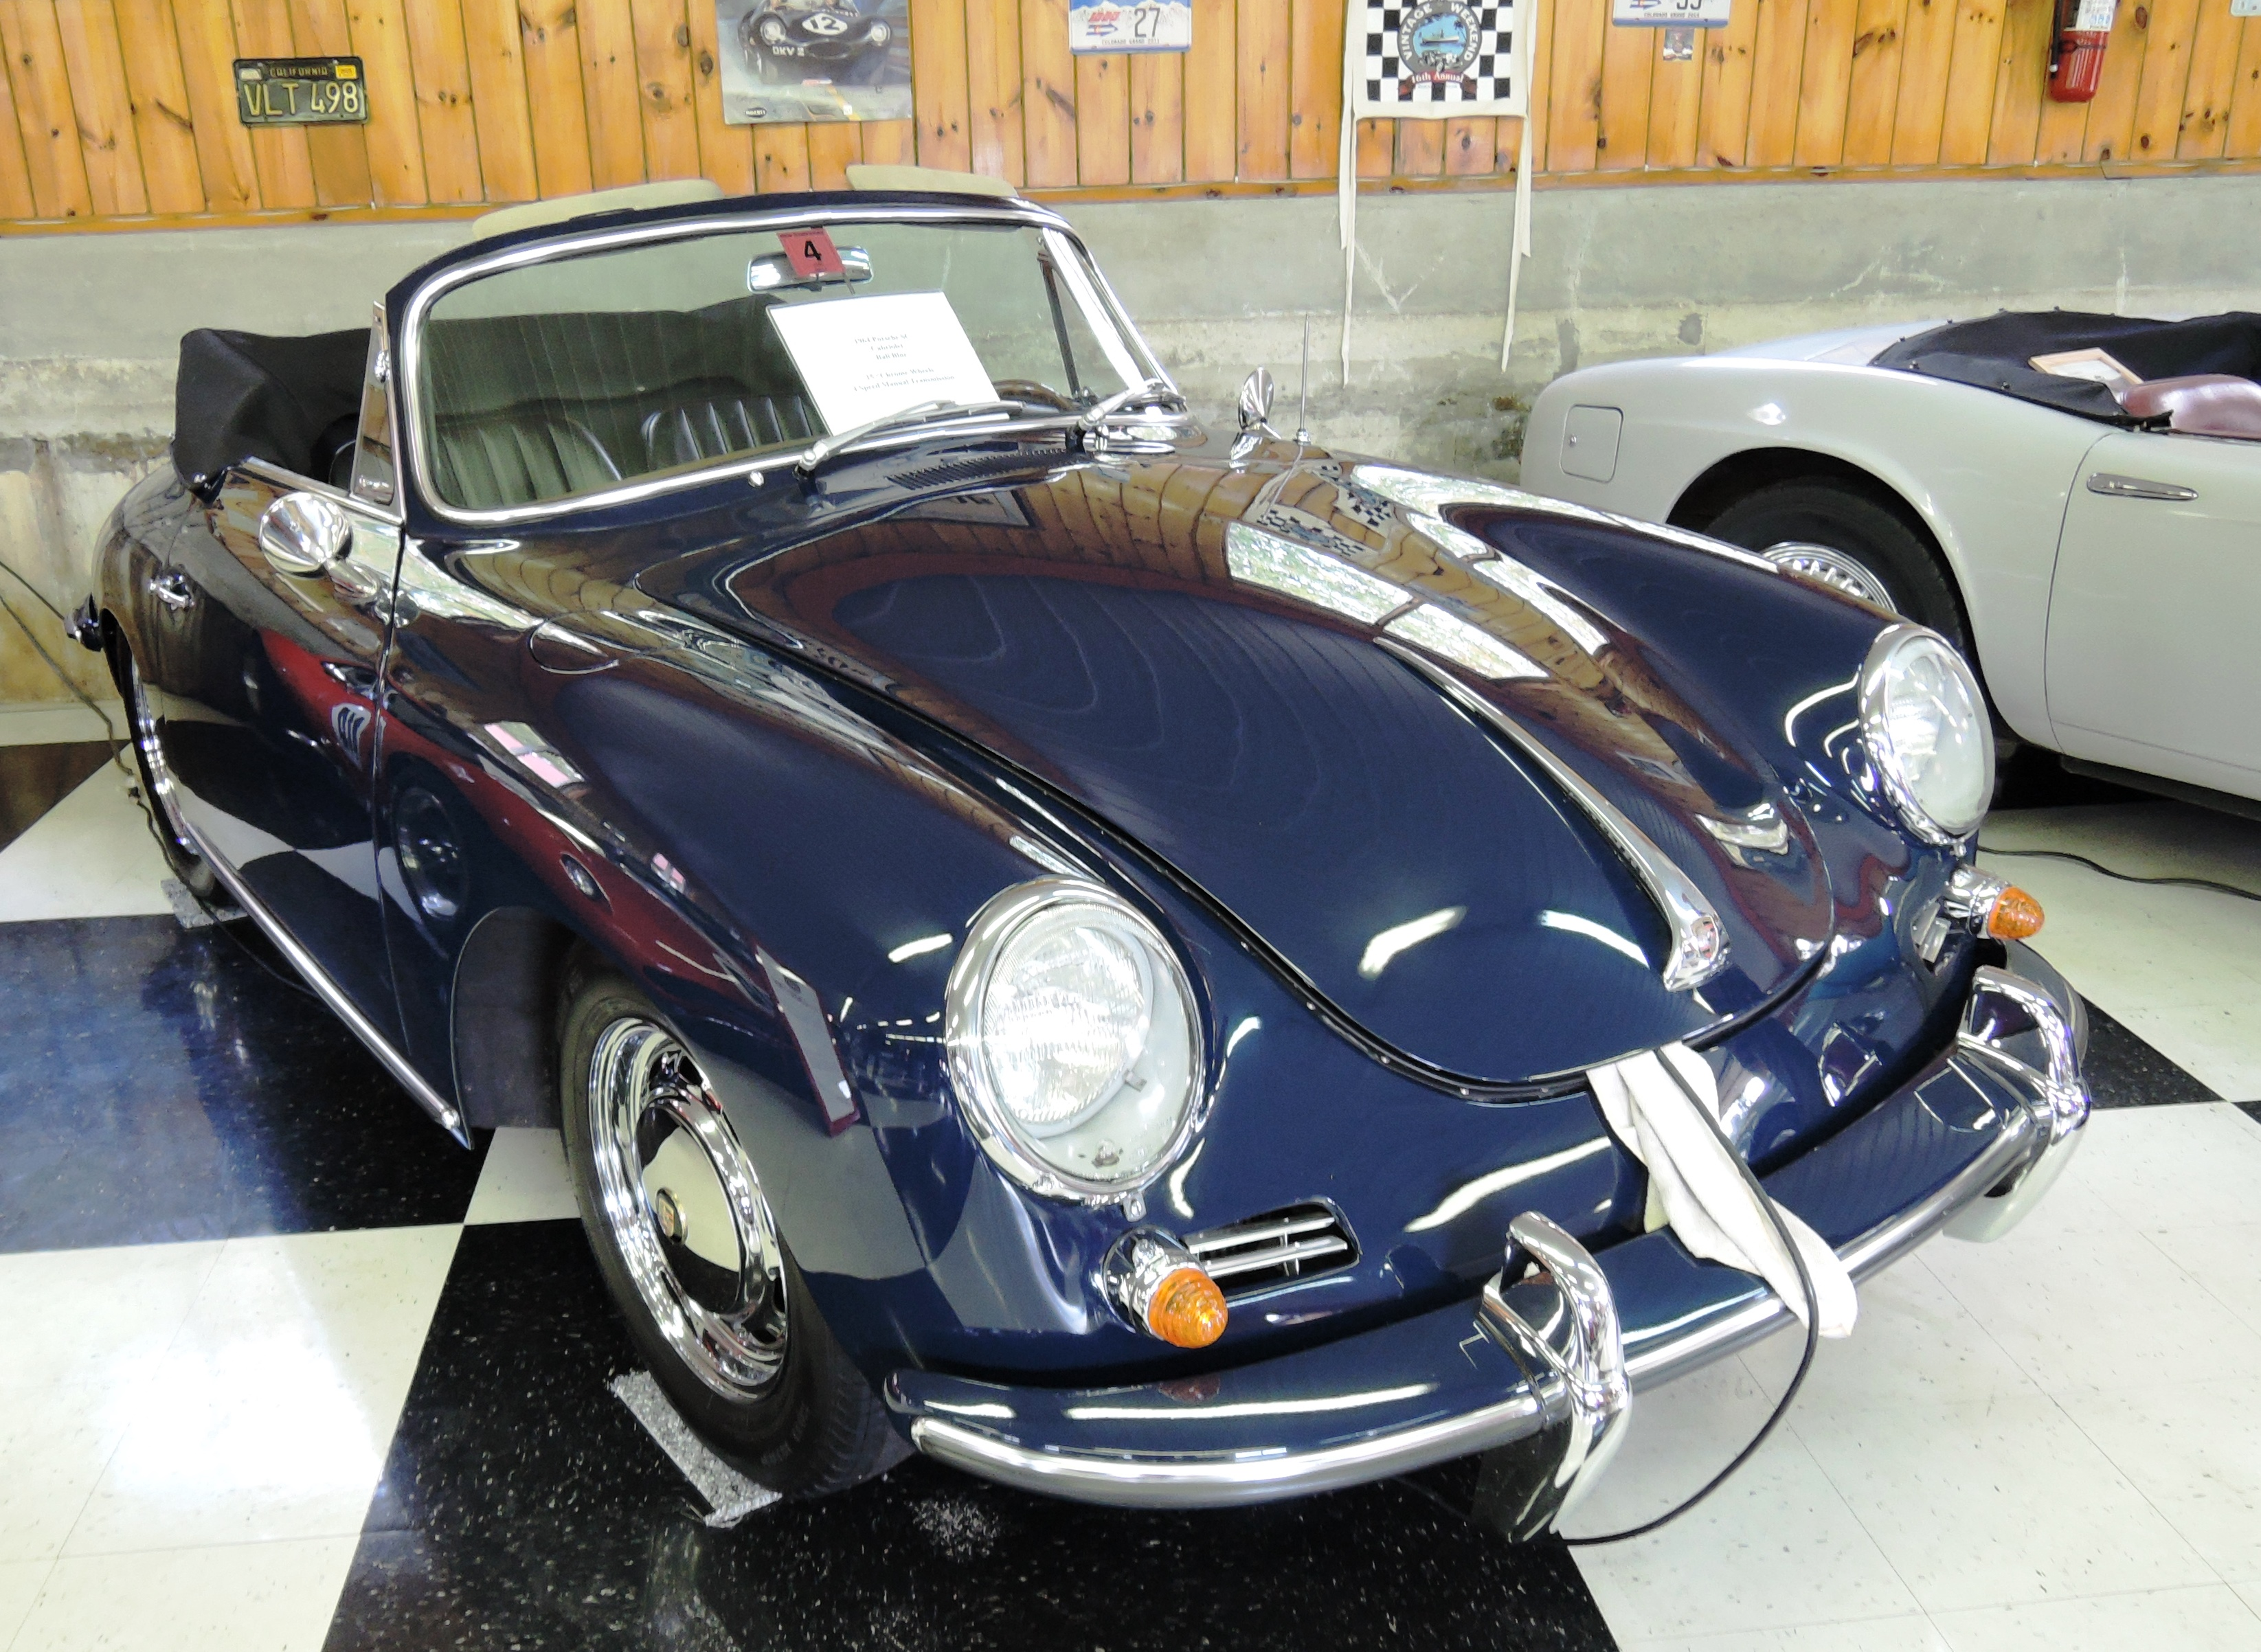 bali blue 1964 Porsche SC Cabriolet - car collection in nh